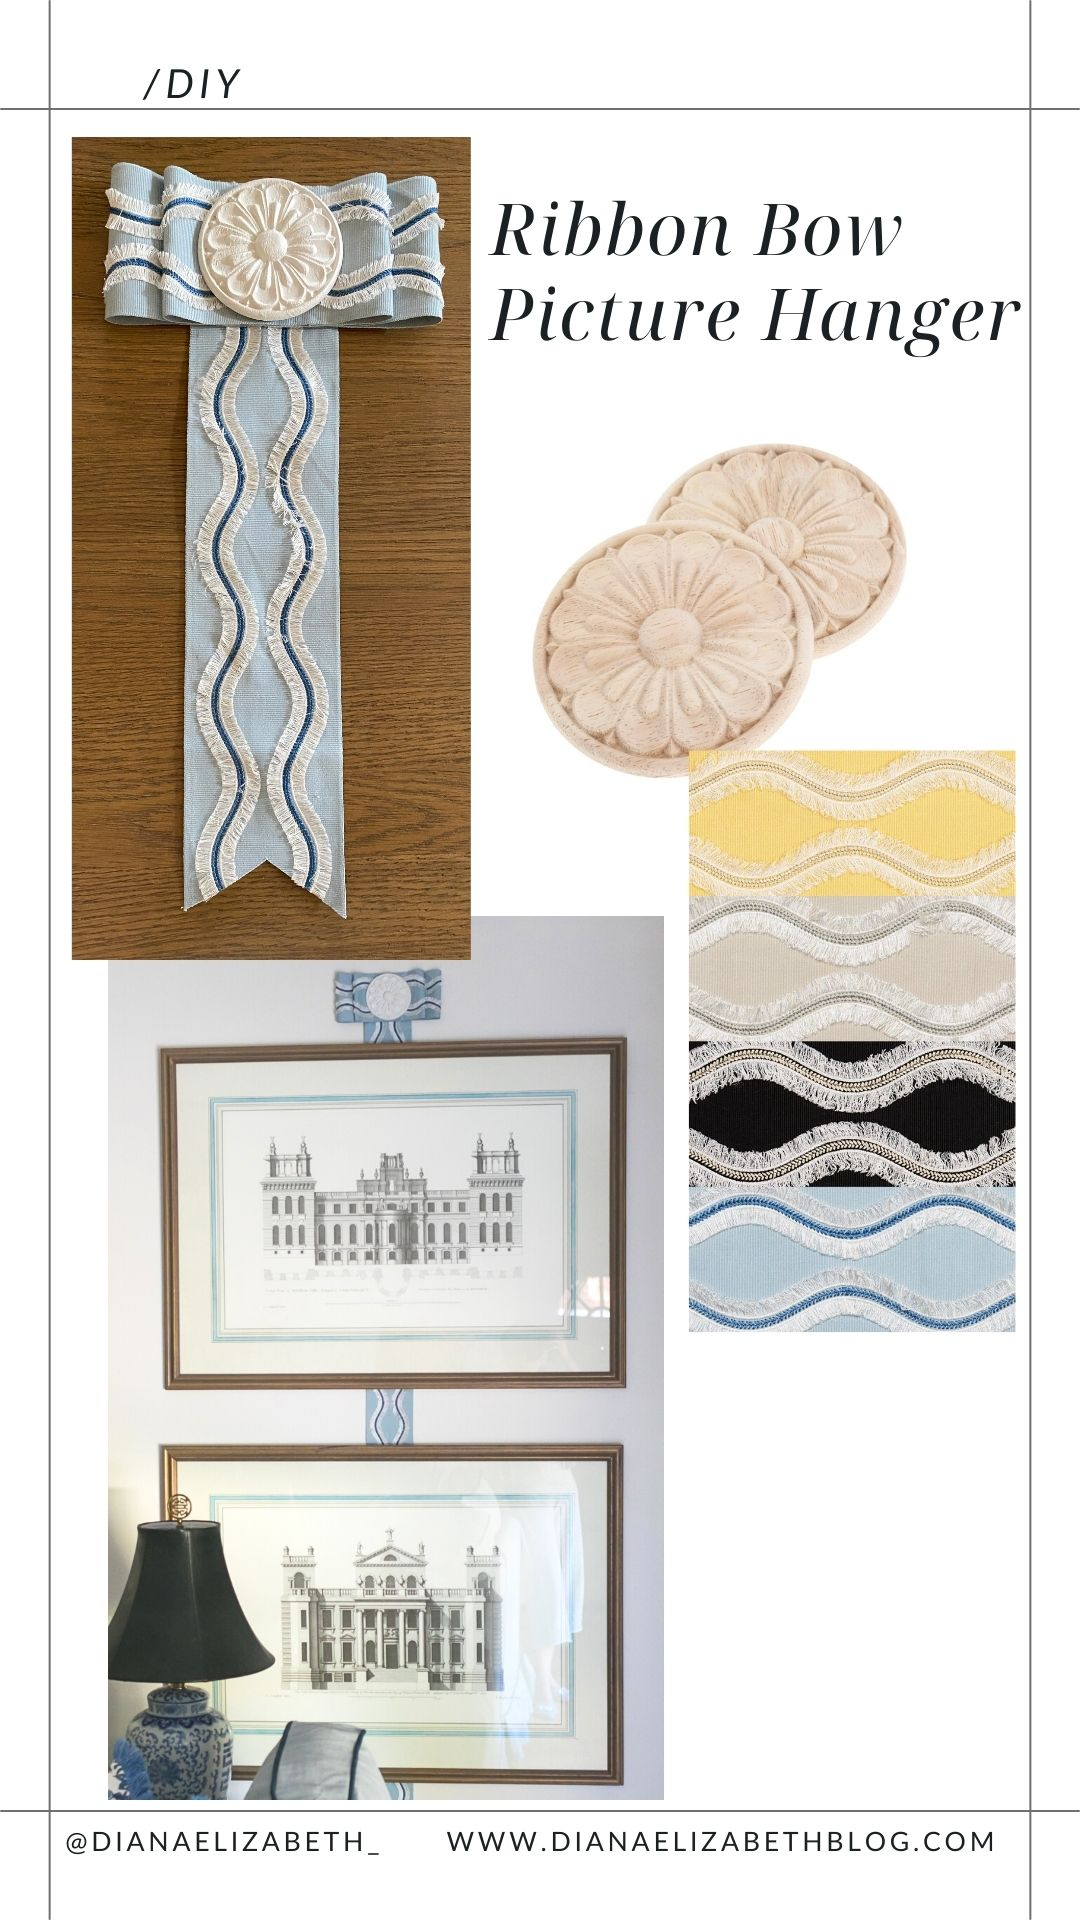 ribbon picture frame holder how to make one with two simple things - dress up the artwork on your walls